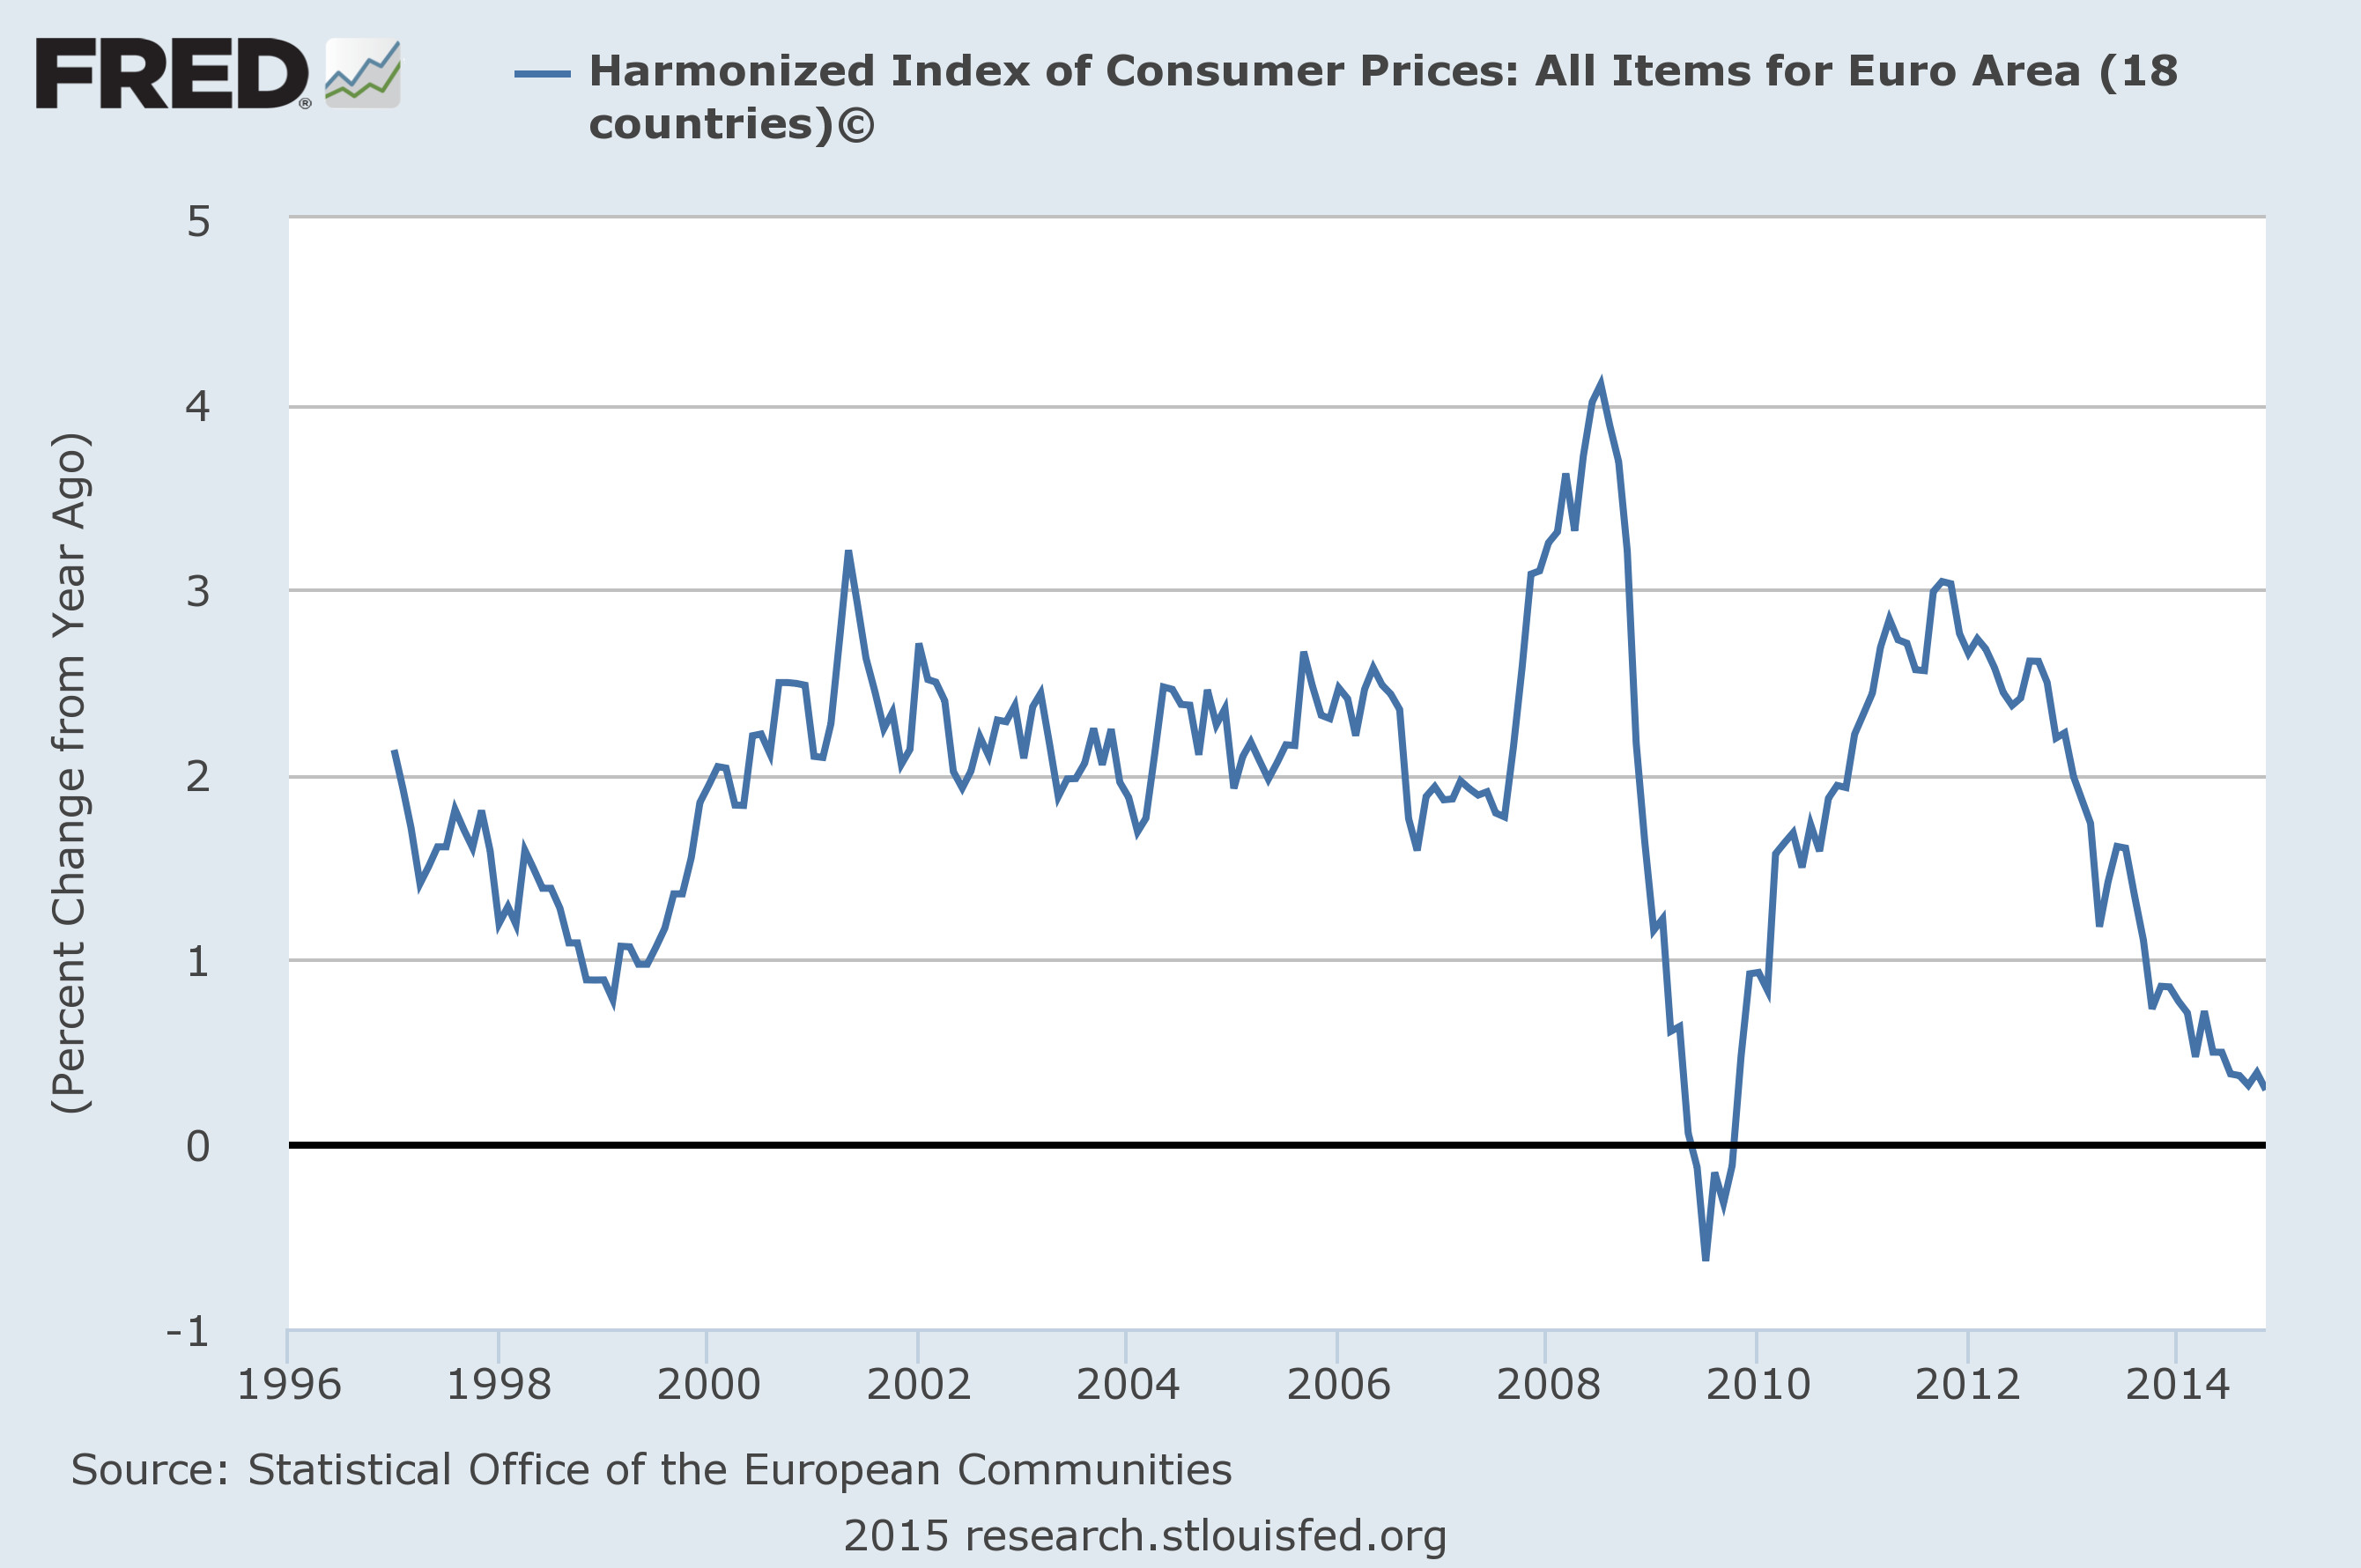 The basic problem is pretty clearly an overall lack of demand, as can be  easily seen from the low and falling inflation rate in the eurozone.